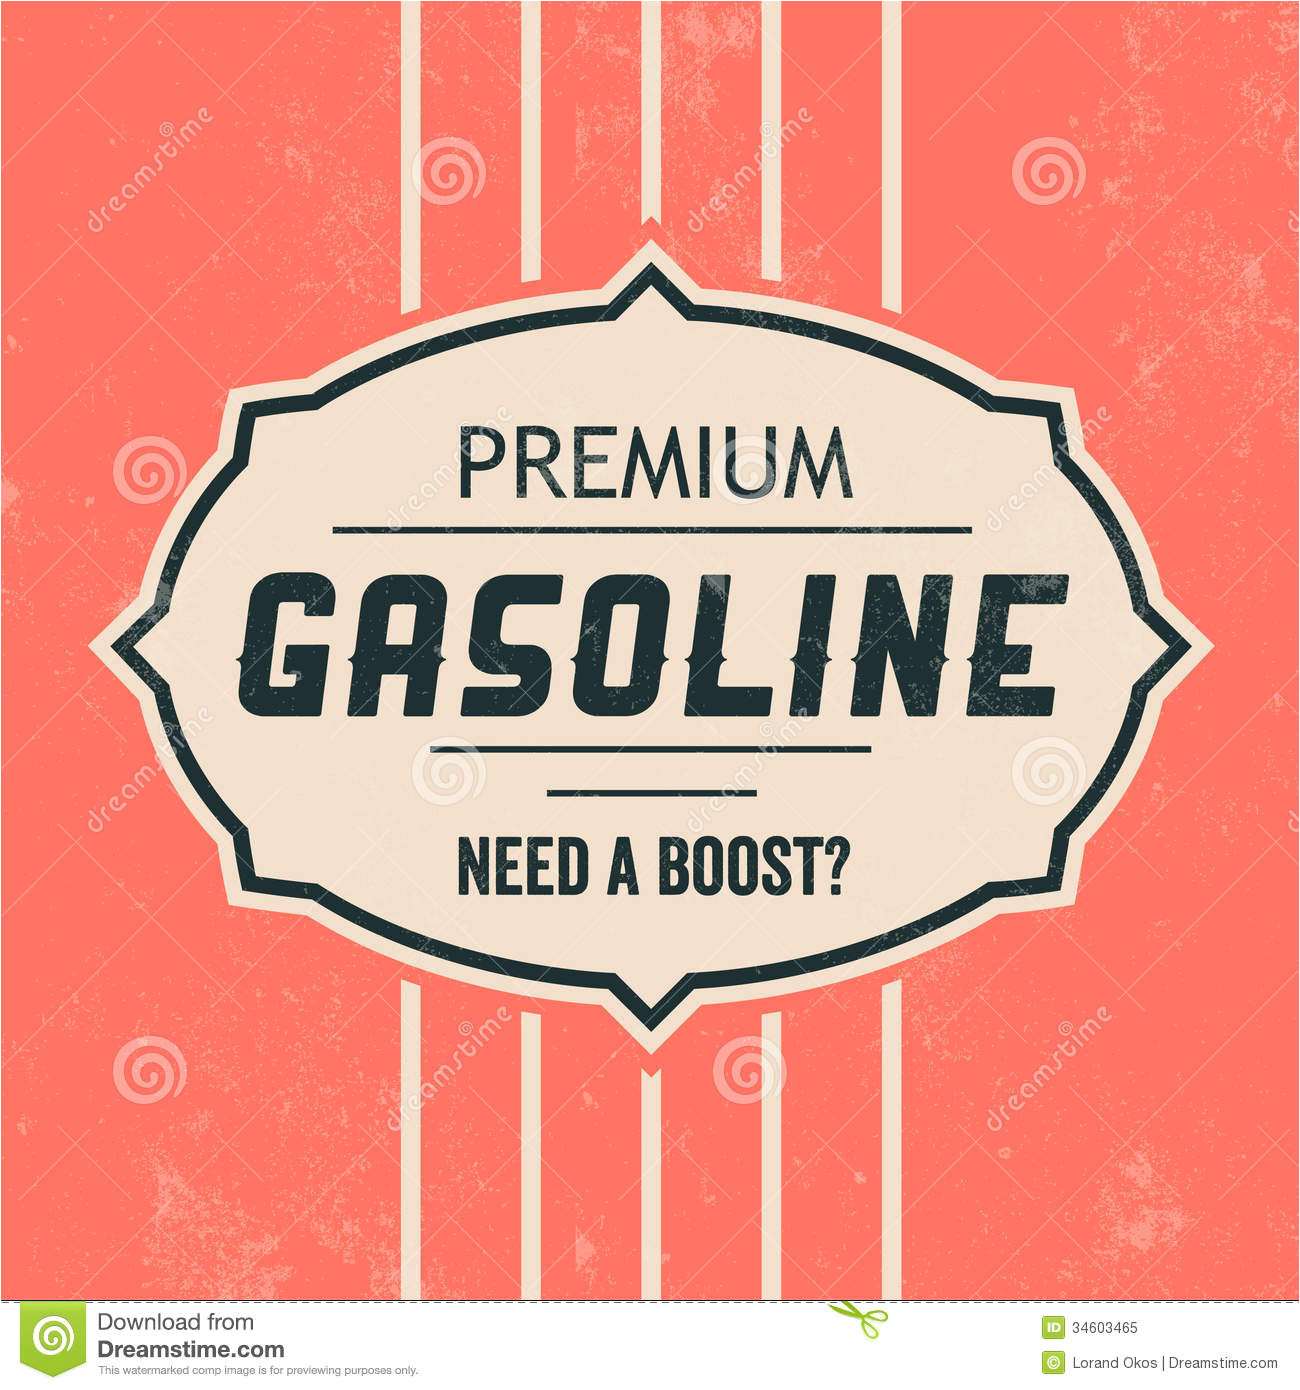 royalty free stock photo vintage gasoline sign retro template grunge texture image34603465